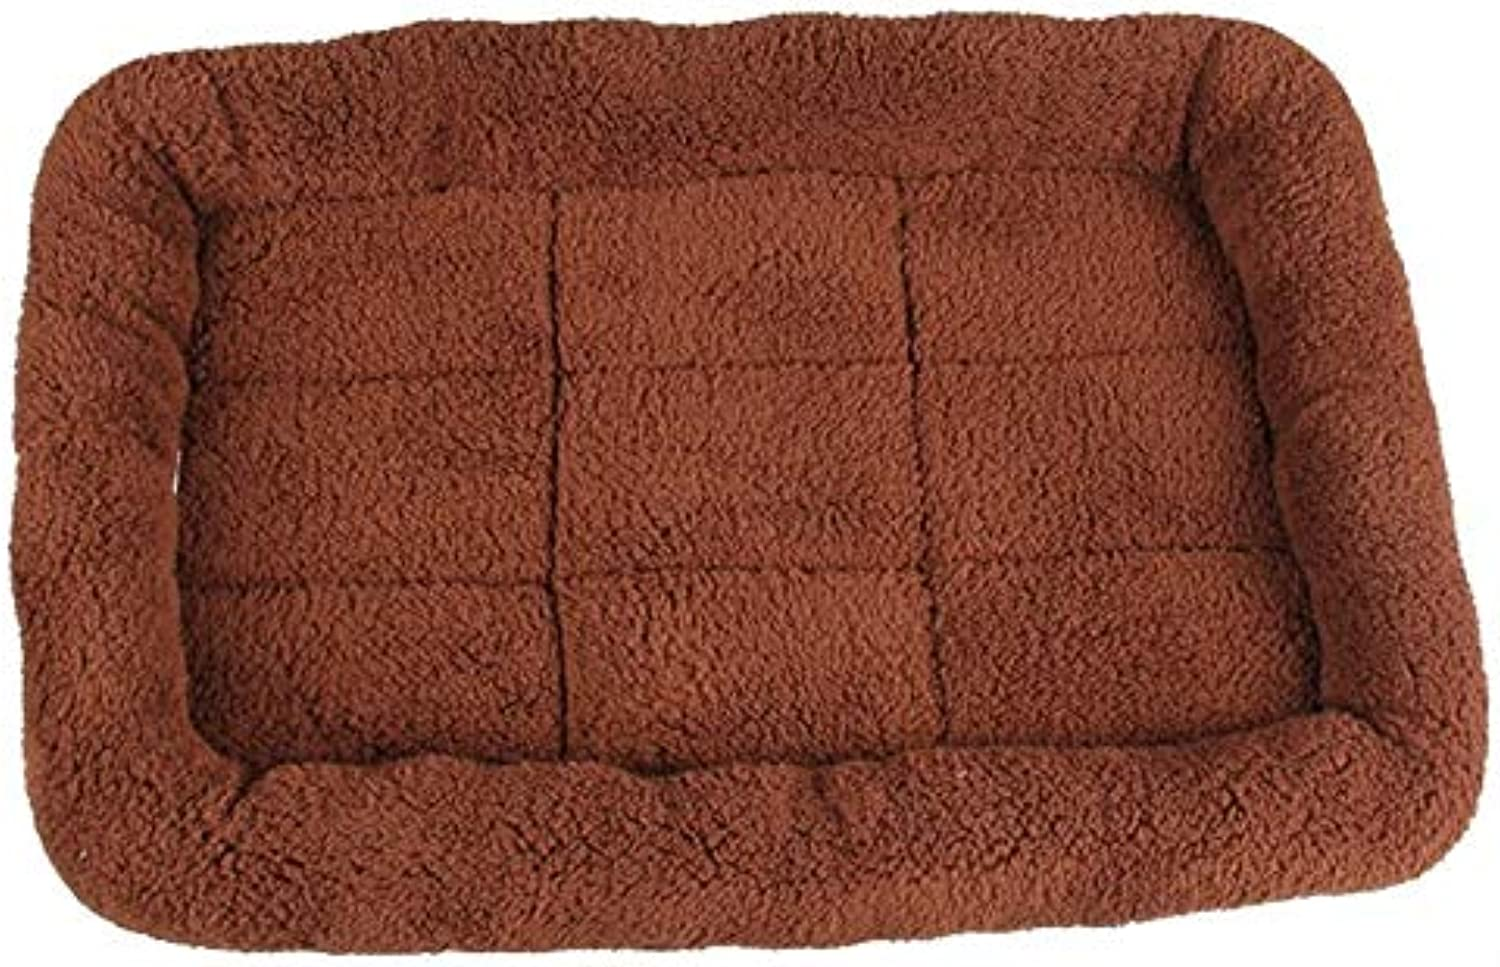 PetvillaLKR 5 Size Pet Large Dog Bed Soft Fleece Warm Cat Beds Multifunction Puppy Cushion Dog Cage Mat Dog Car Seat Mat Brown,Xl